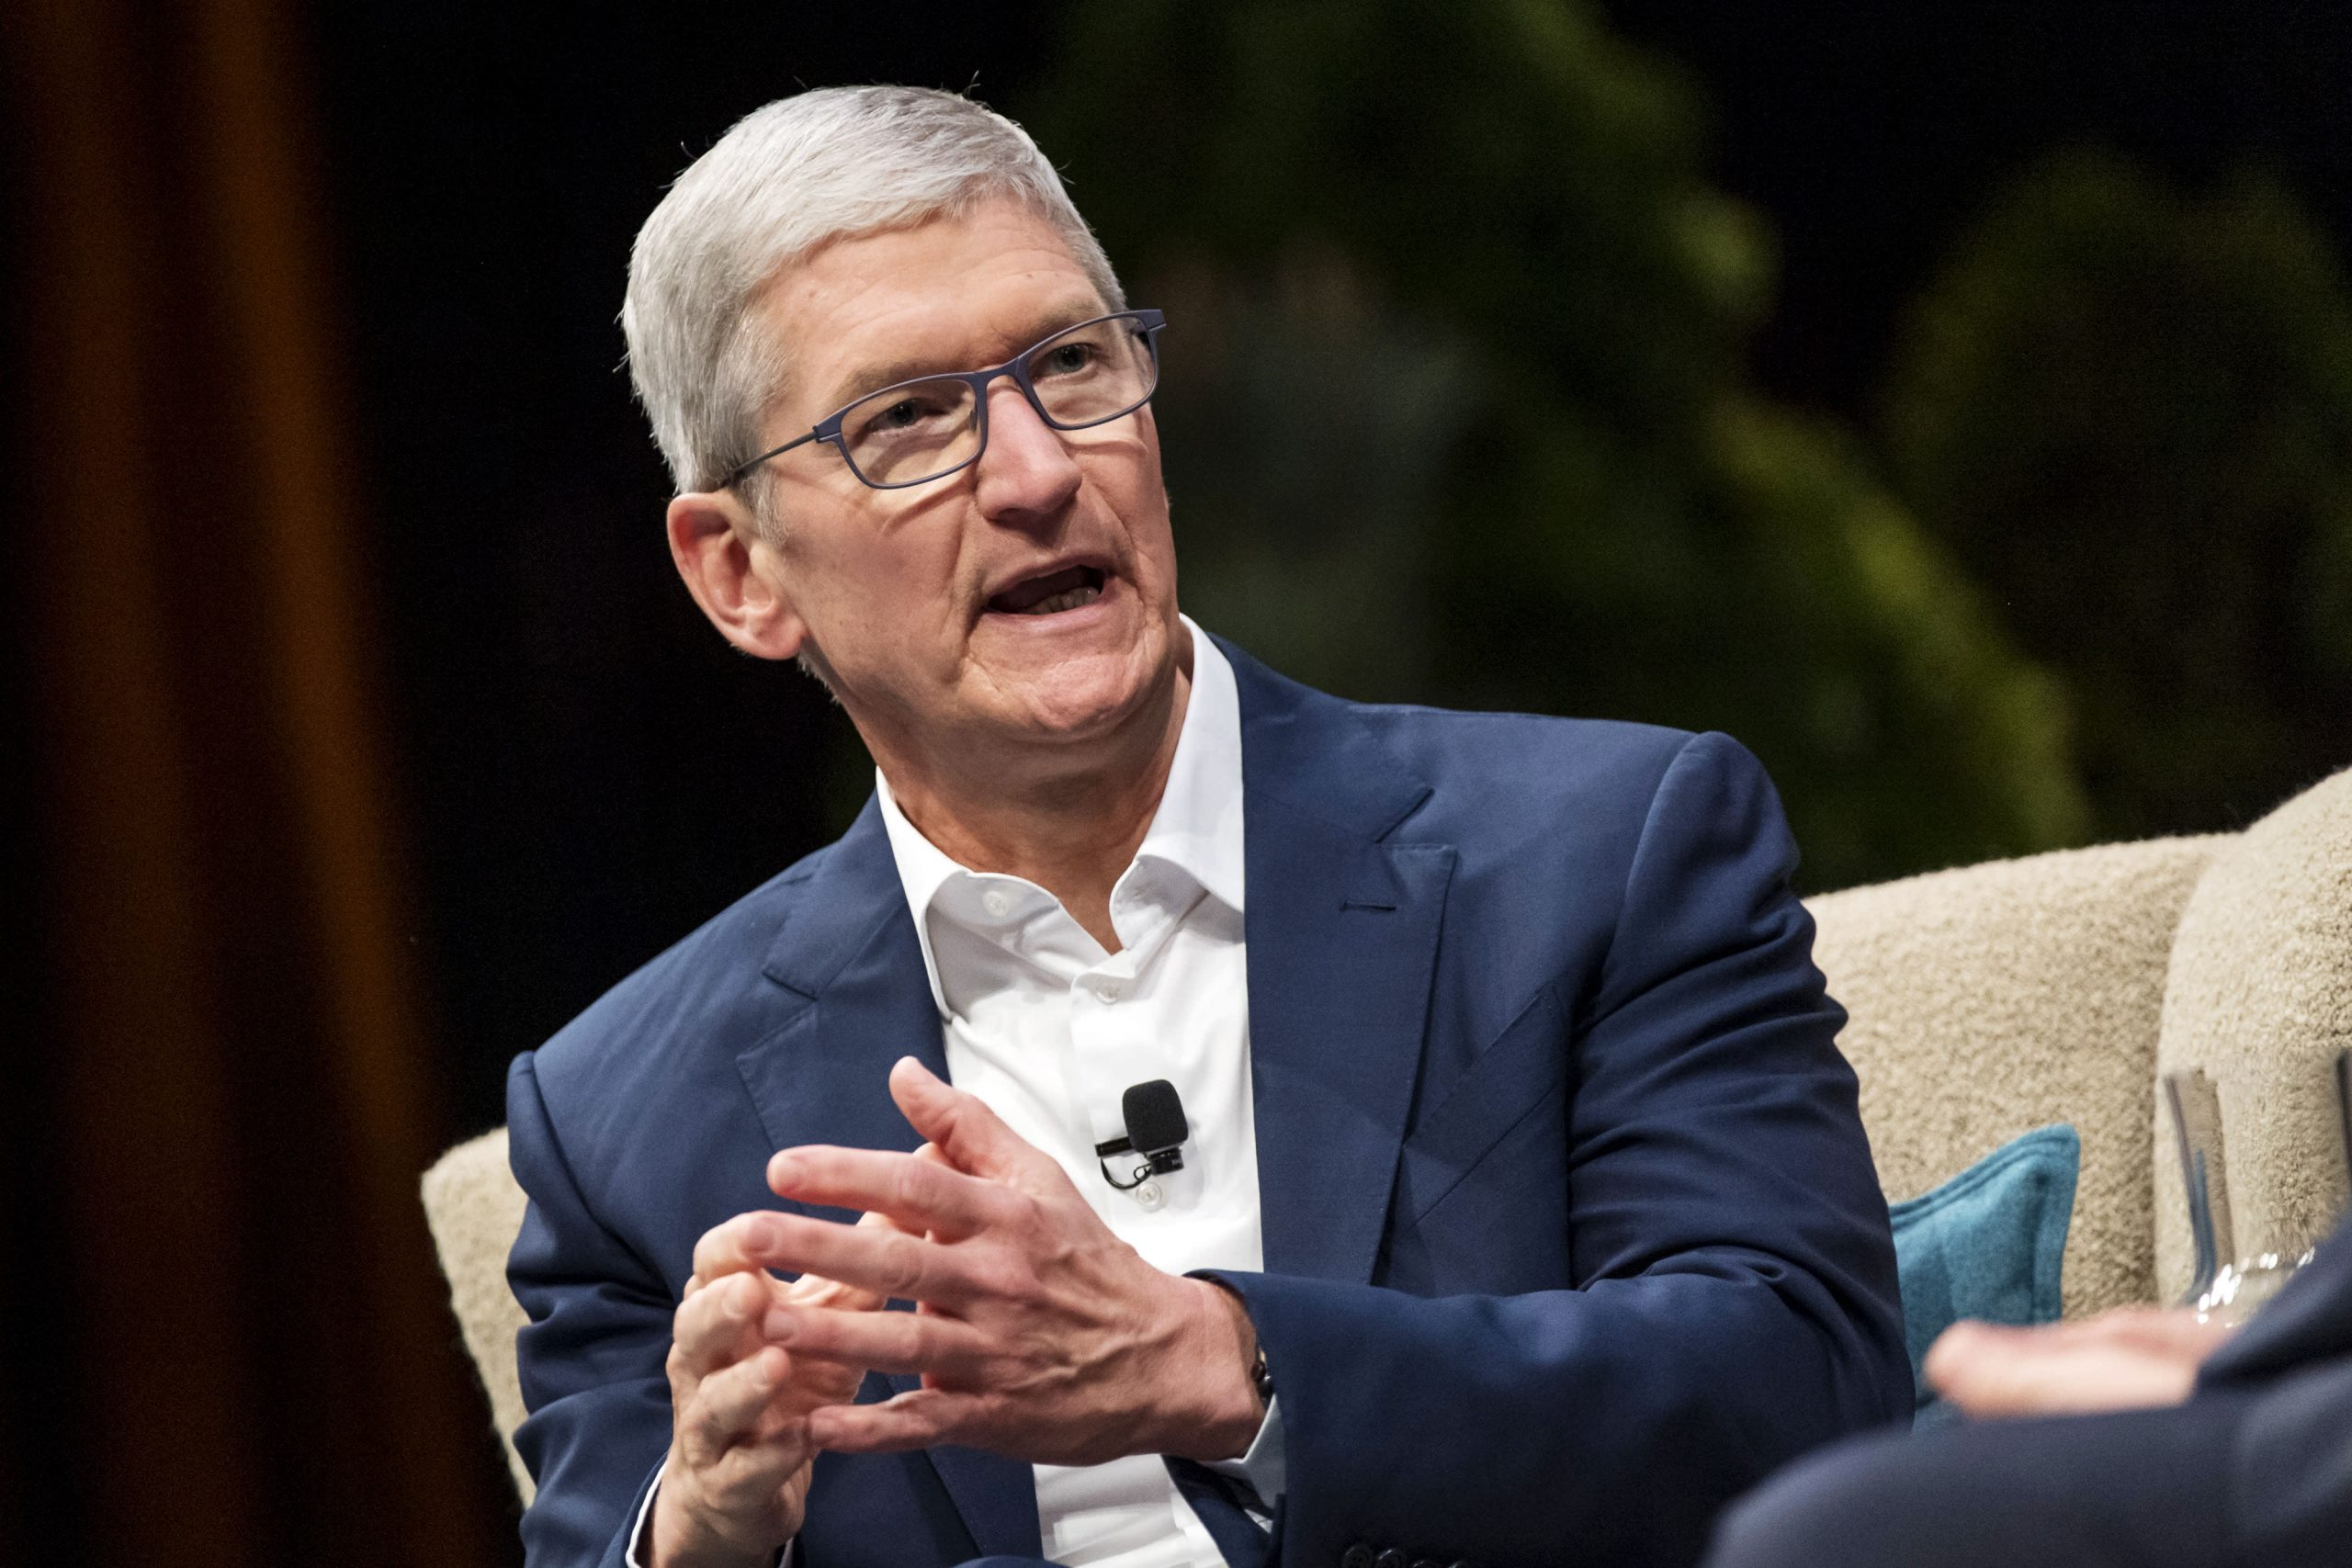 Google and Apple scare us, app makers tell Congress